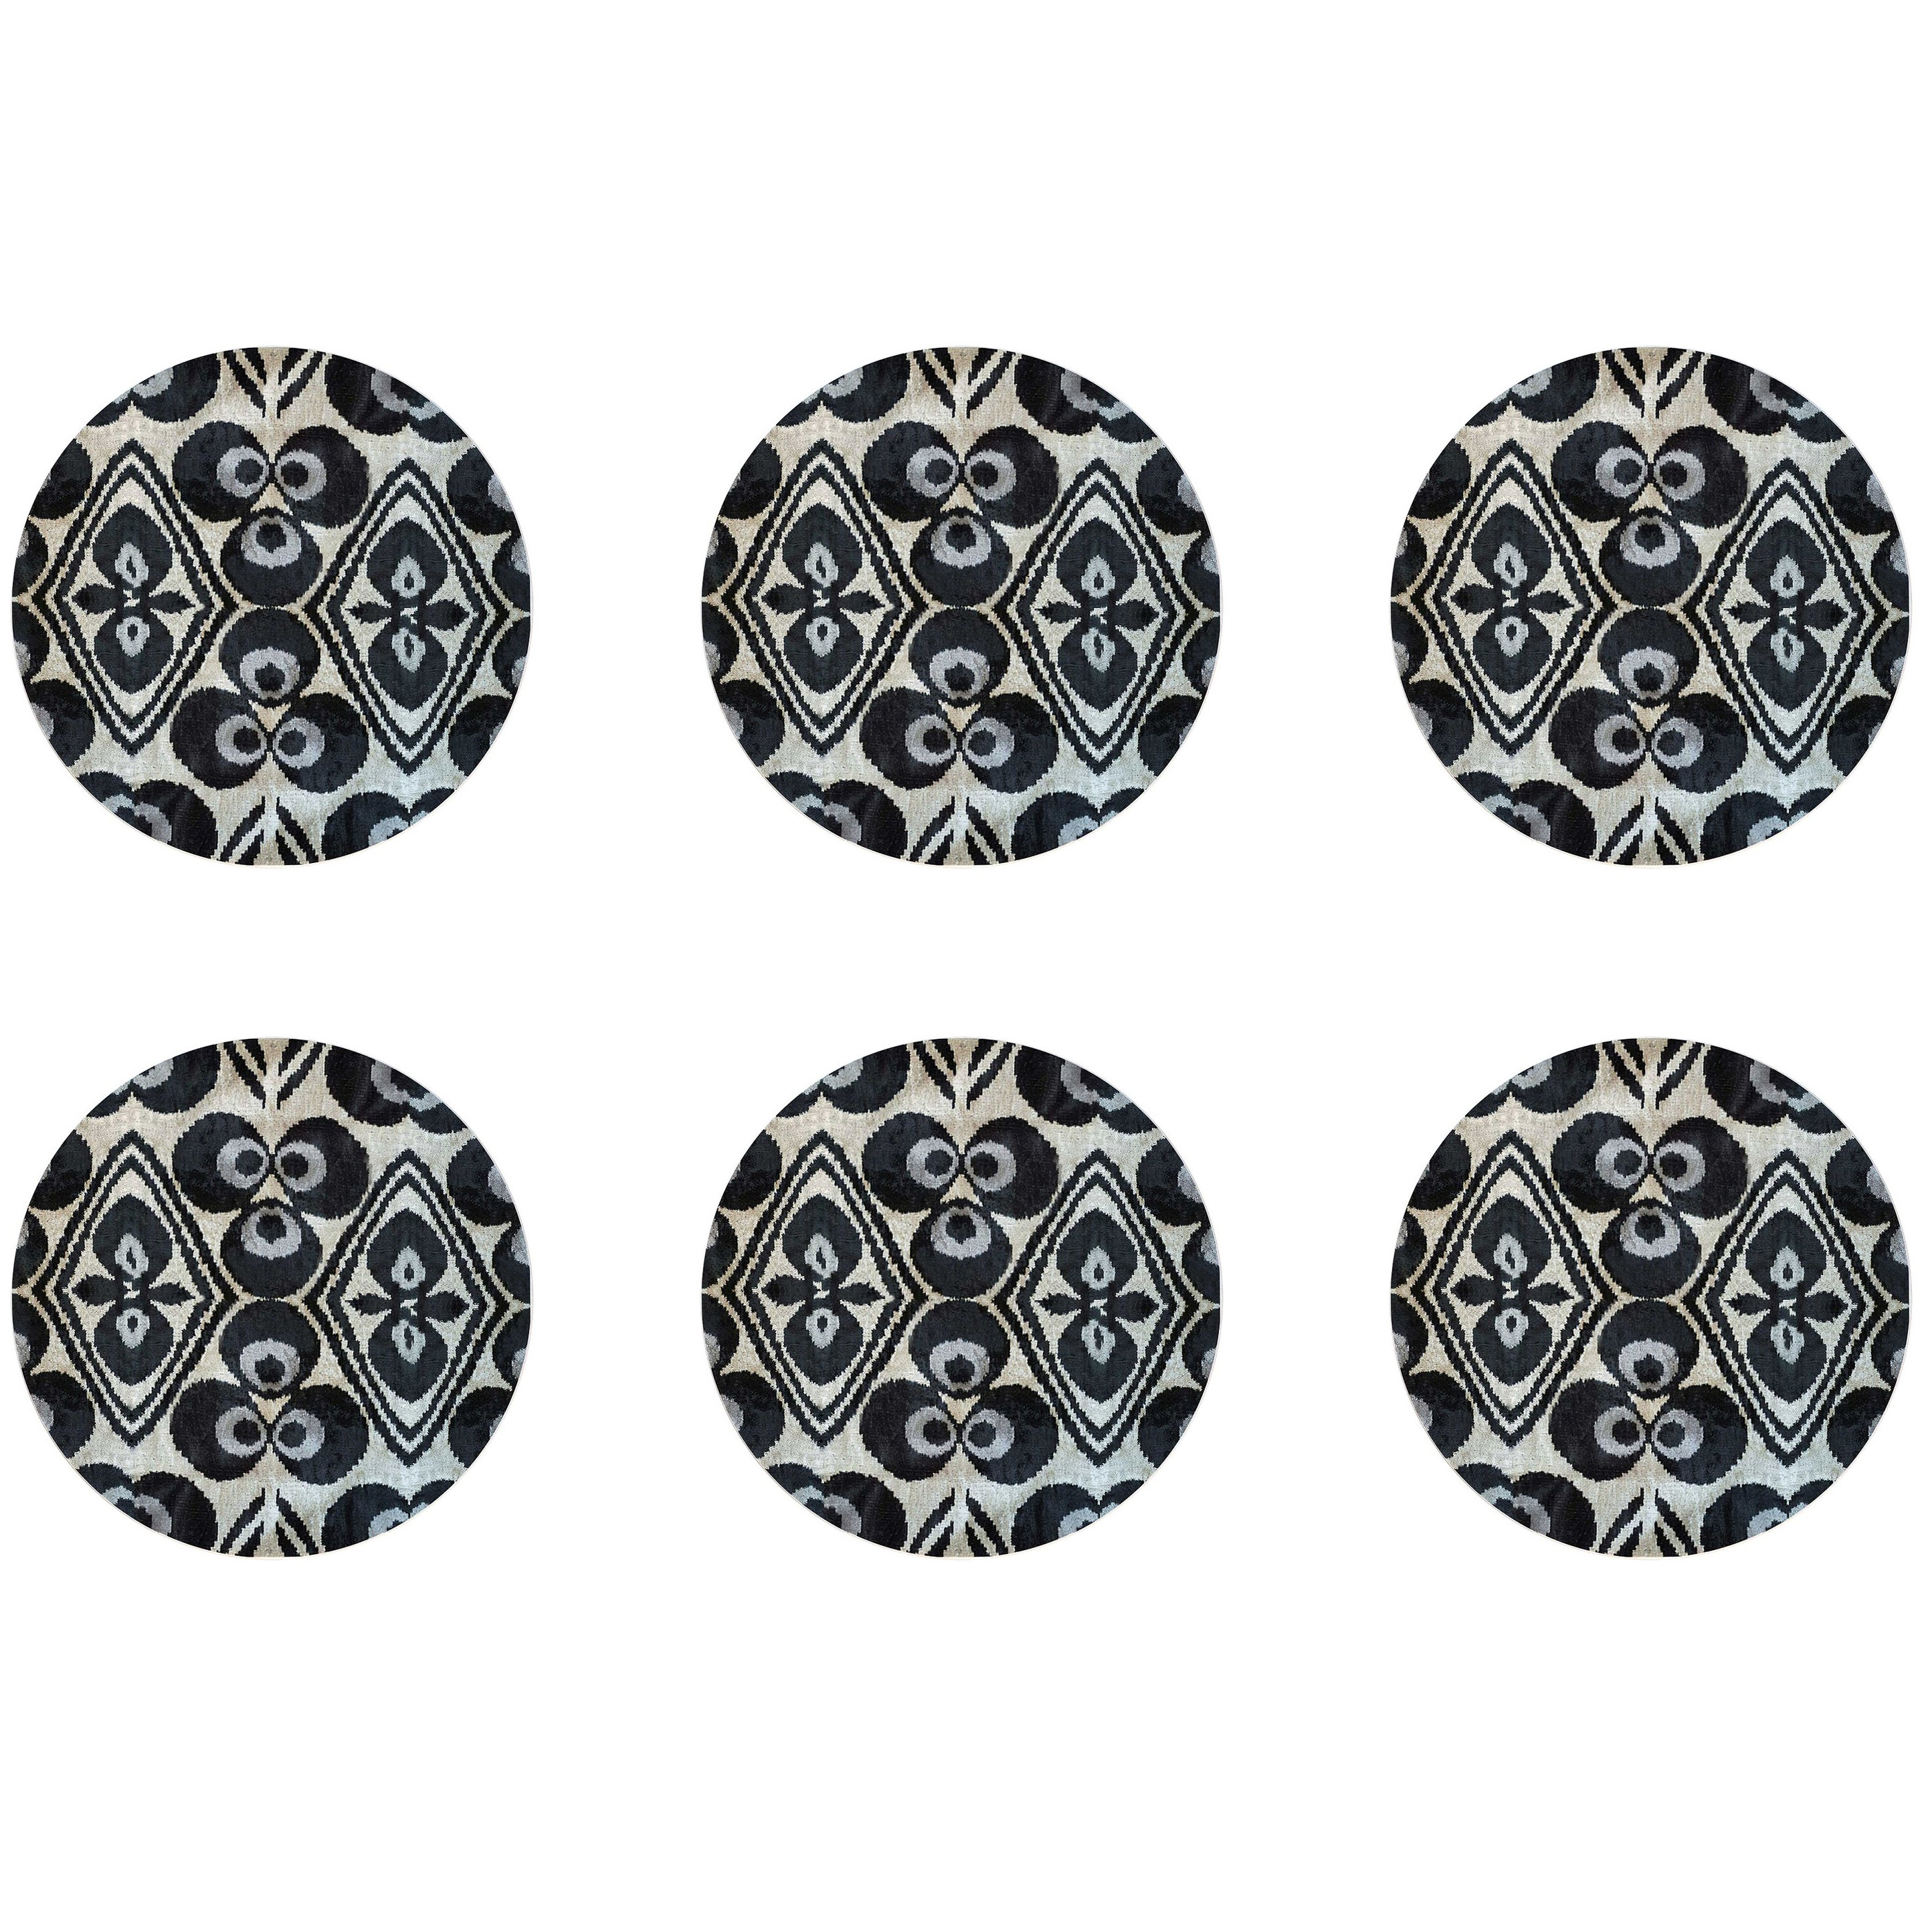 Ikat Porcelain Dinner Plates Set of Six Black Made in Italy